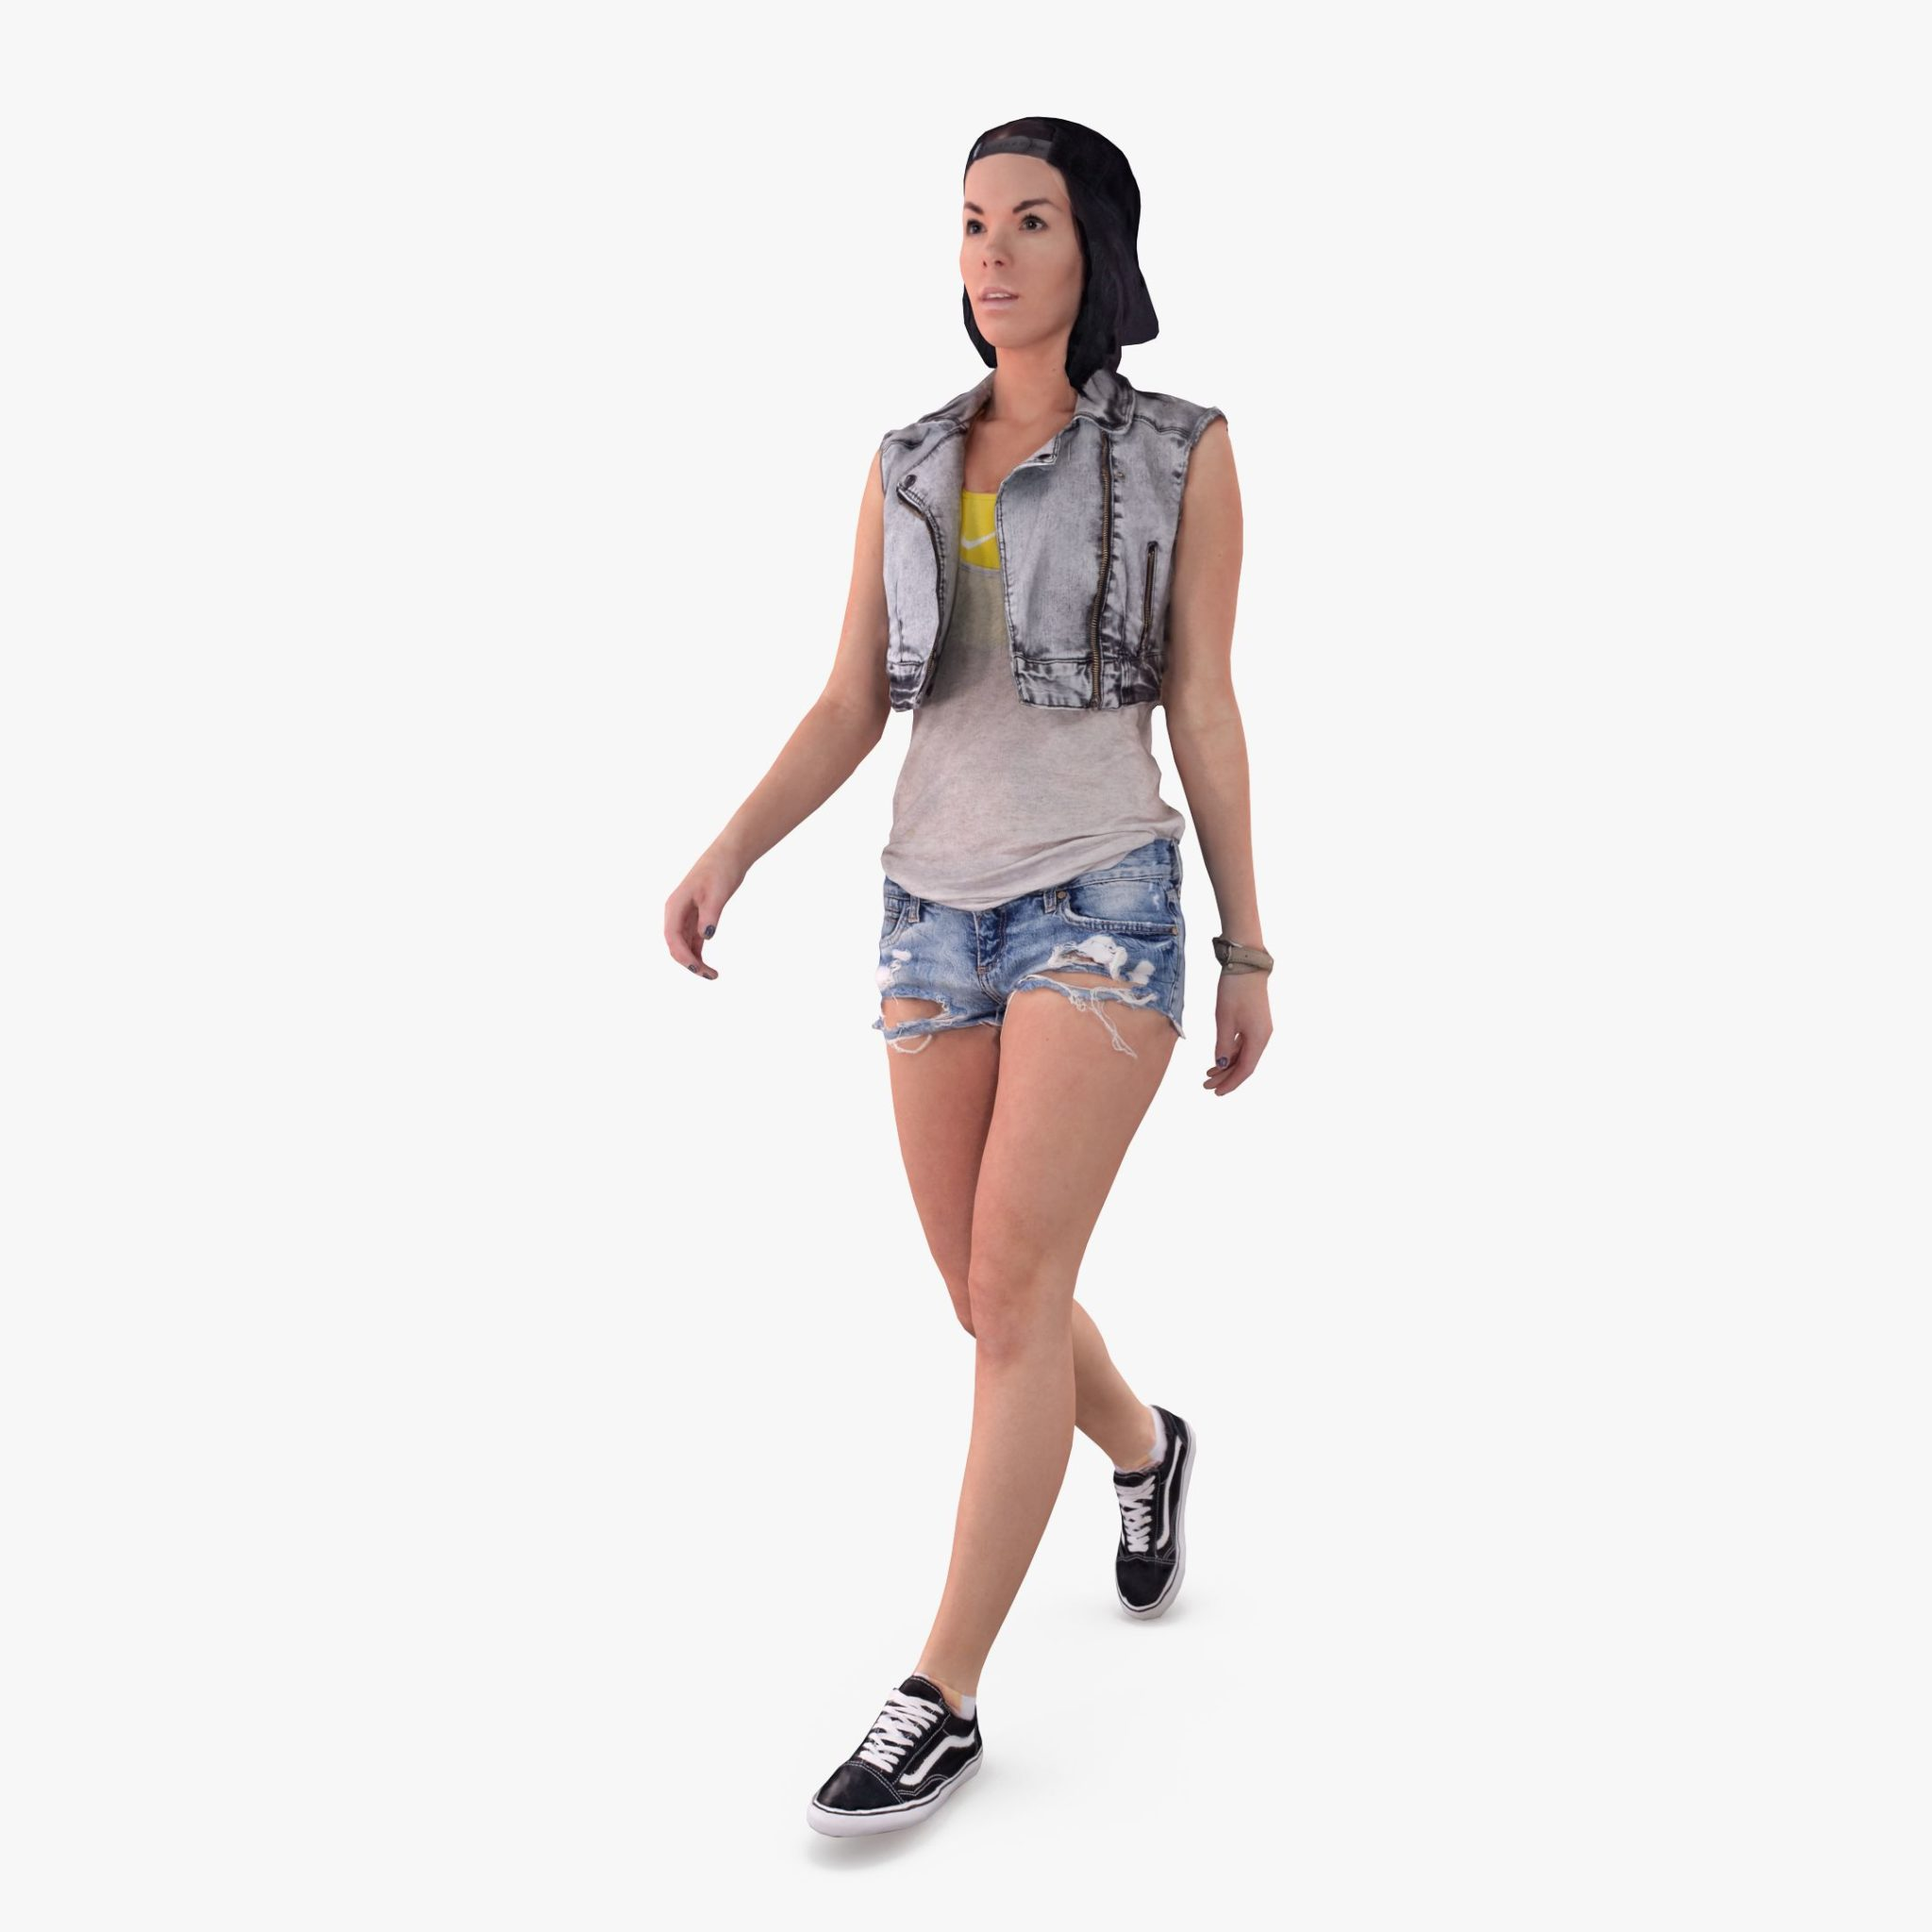 Summer Lady Walking 3D Model | 3DTree Scanning Studio